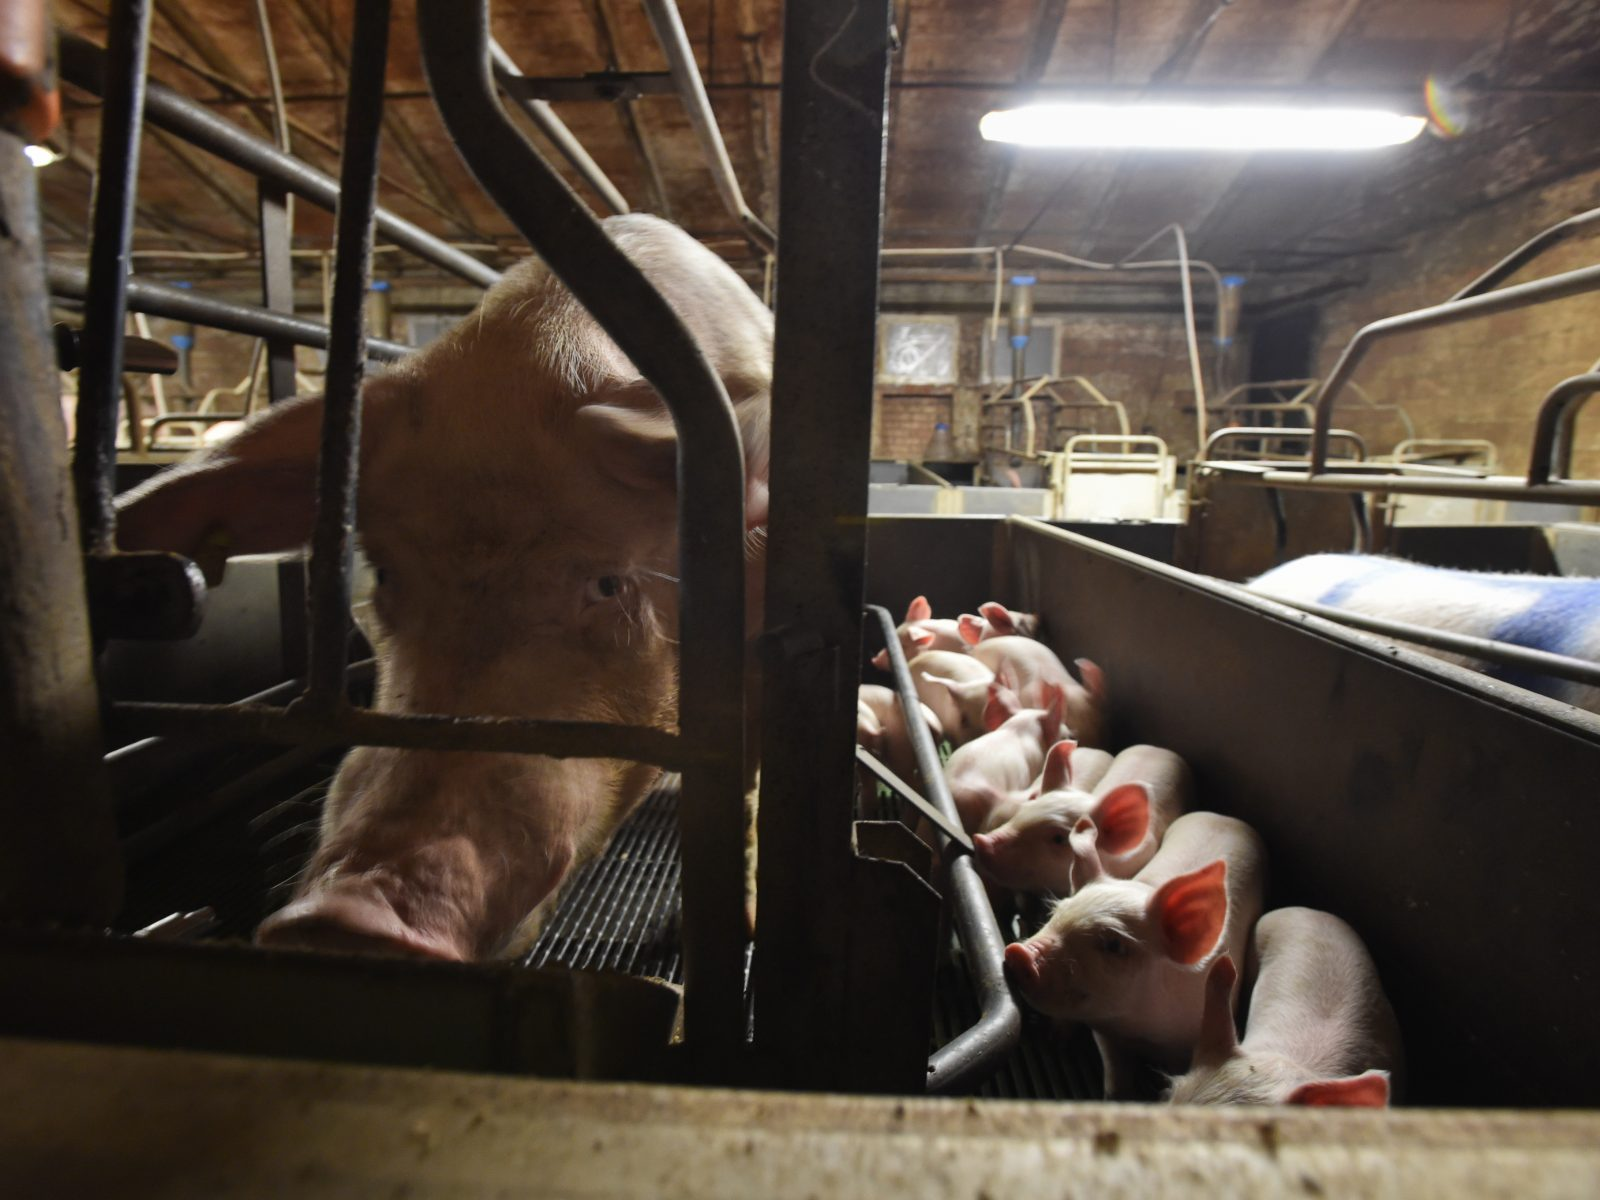 A sow and her litter, nursing inside a gestation crate in an Italian factory farm